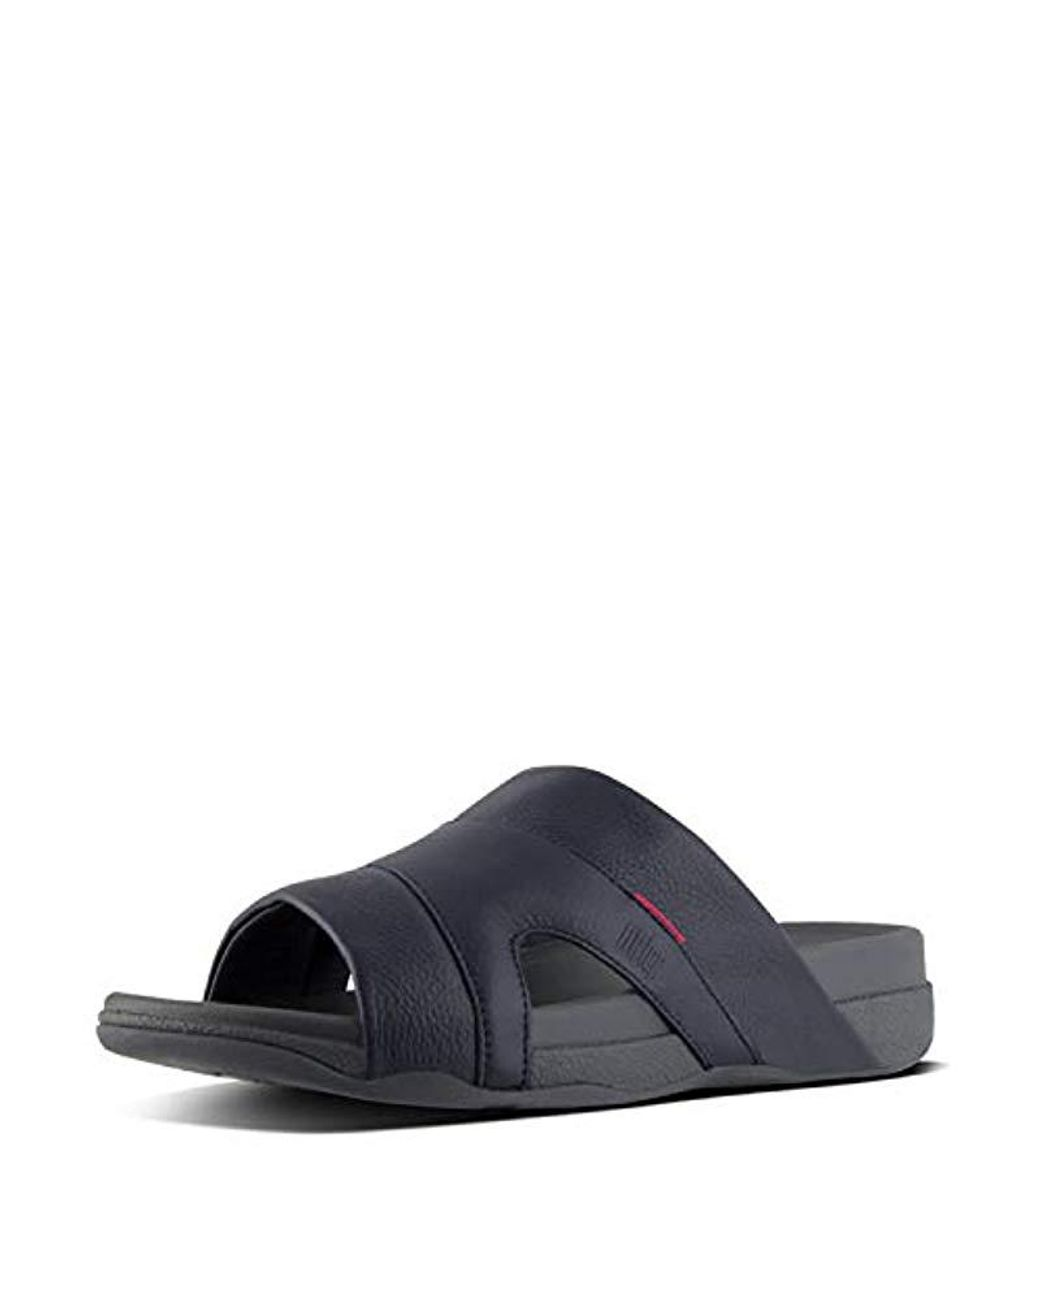 Sa Leather Fitflop Freeway In Pool Slide SUzpqMV